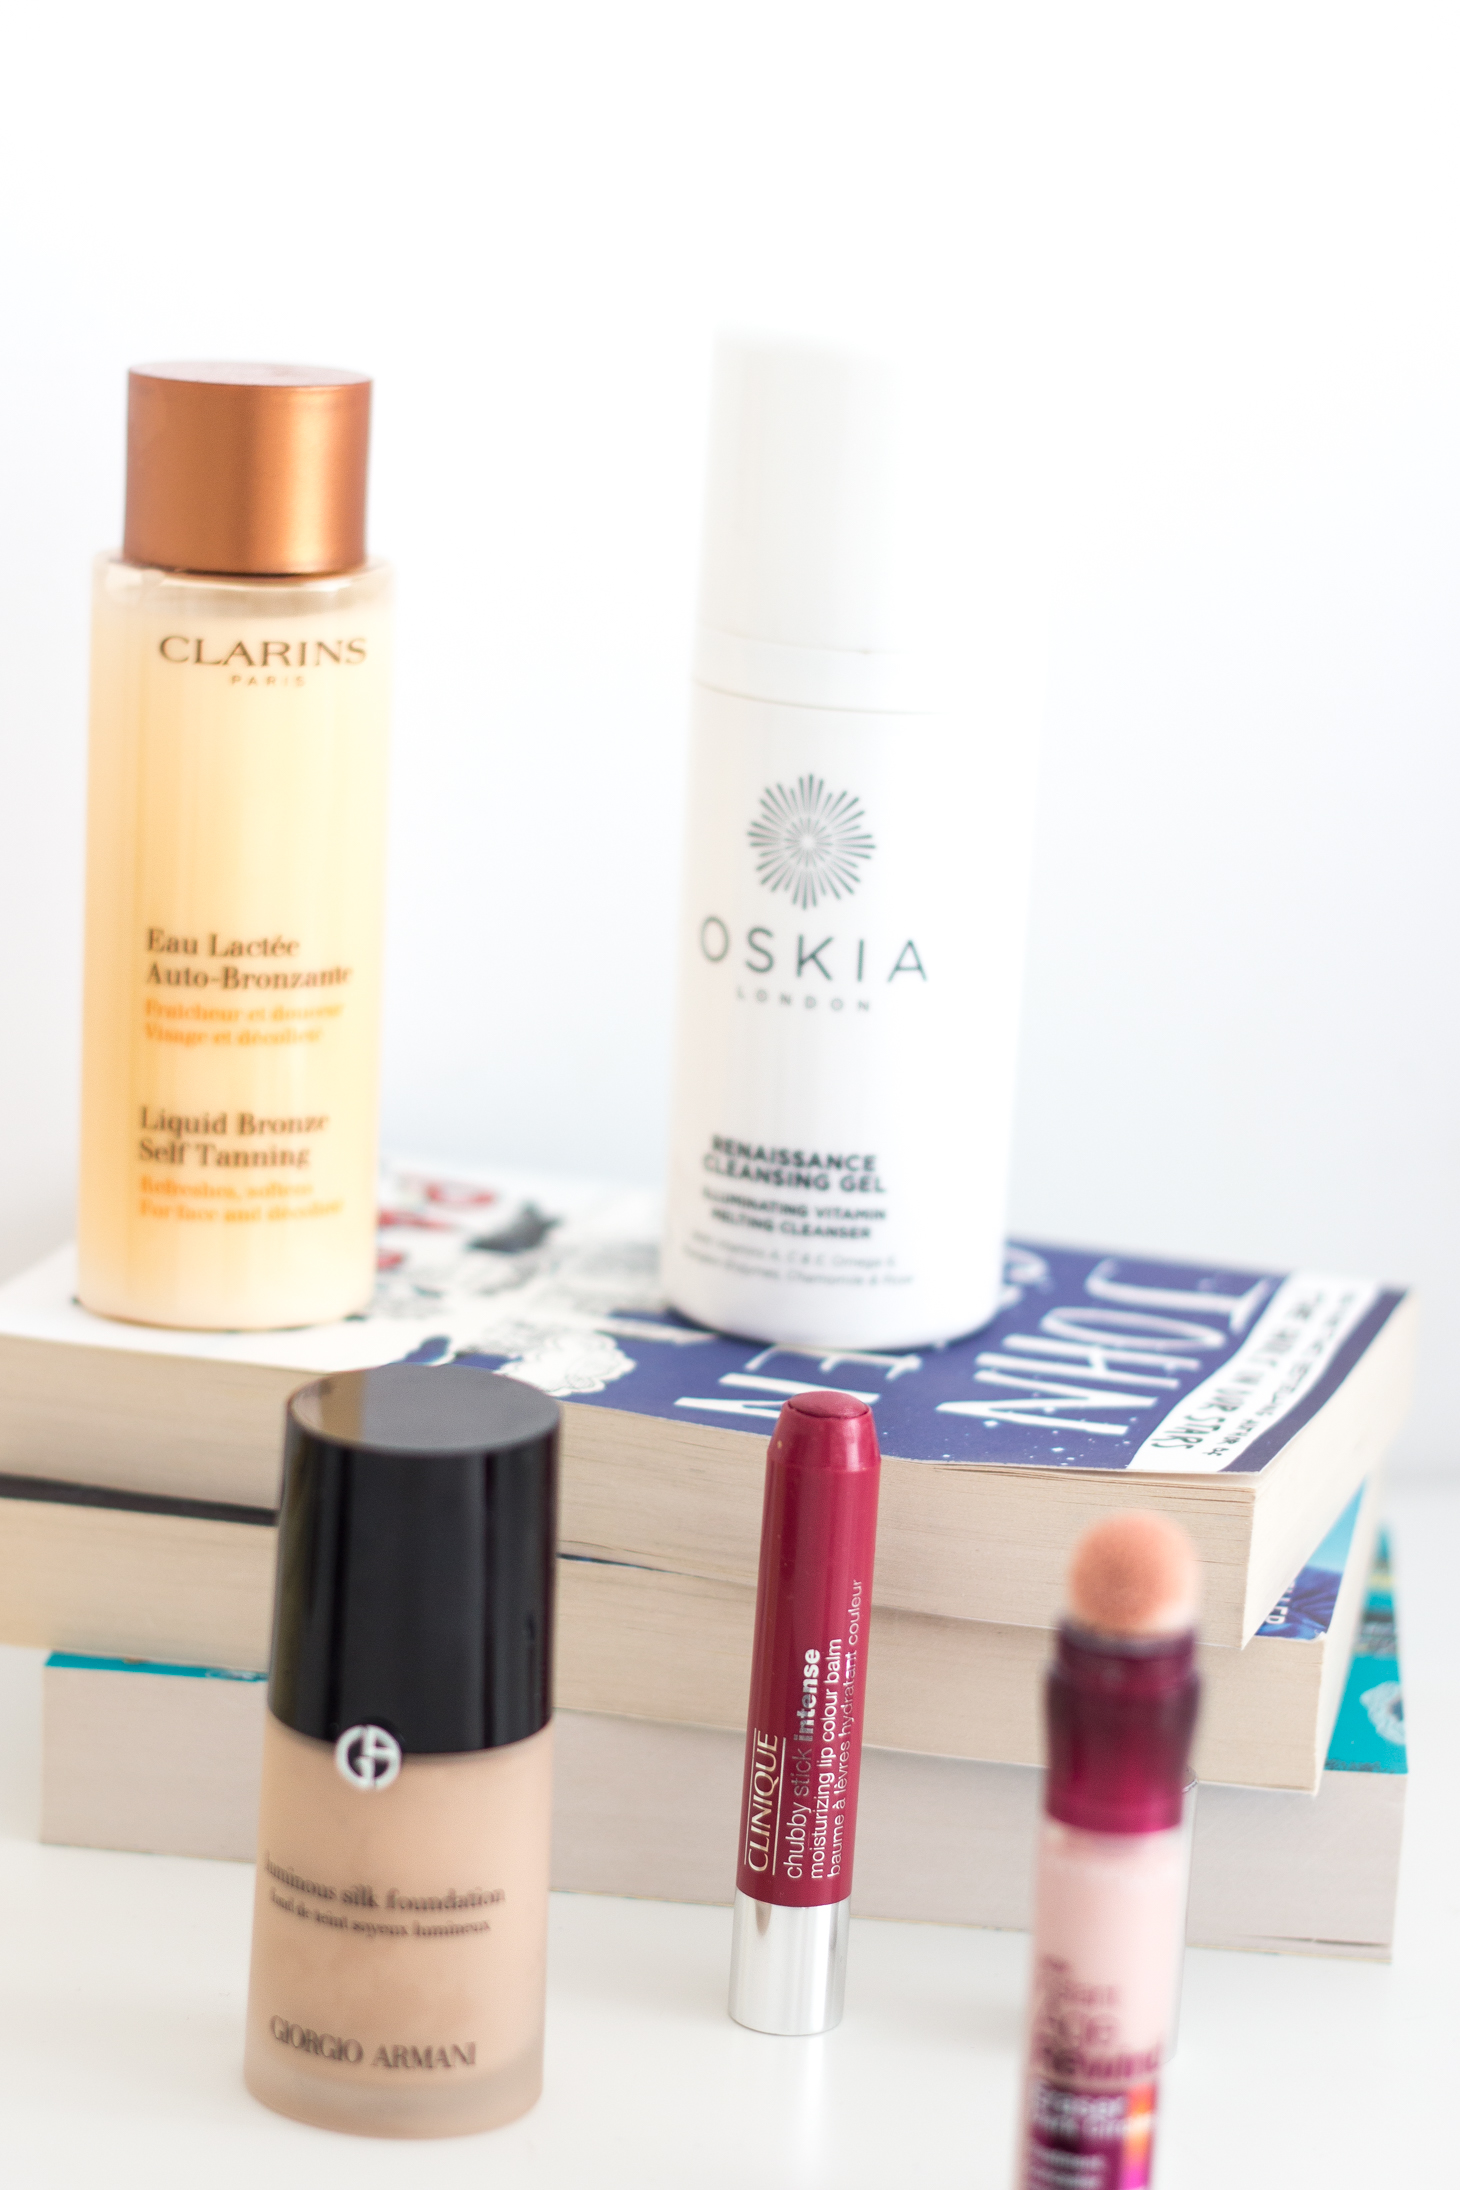 My most repurchased beauty products